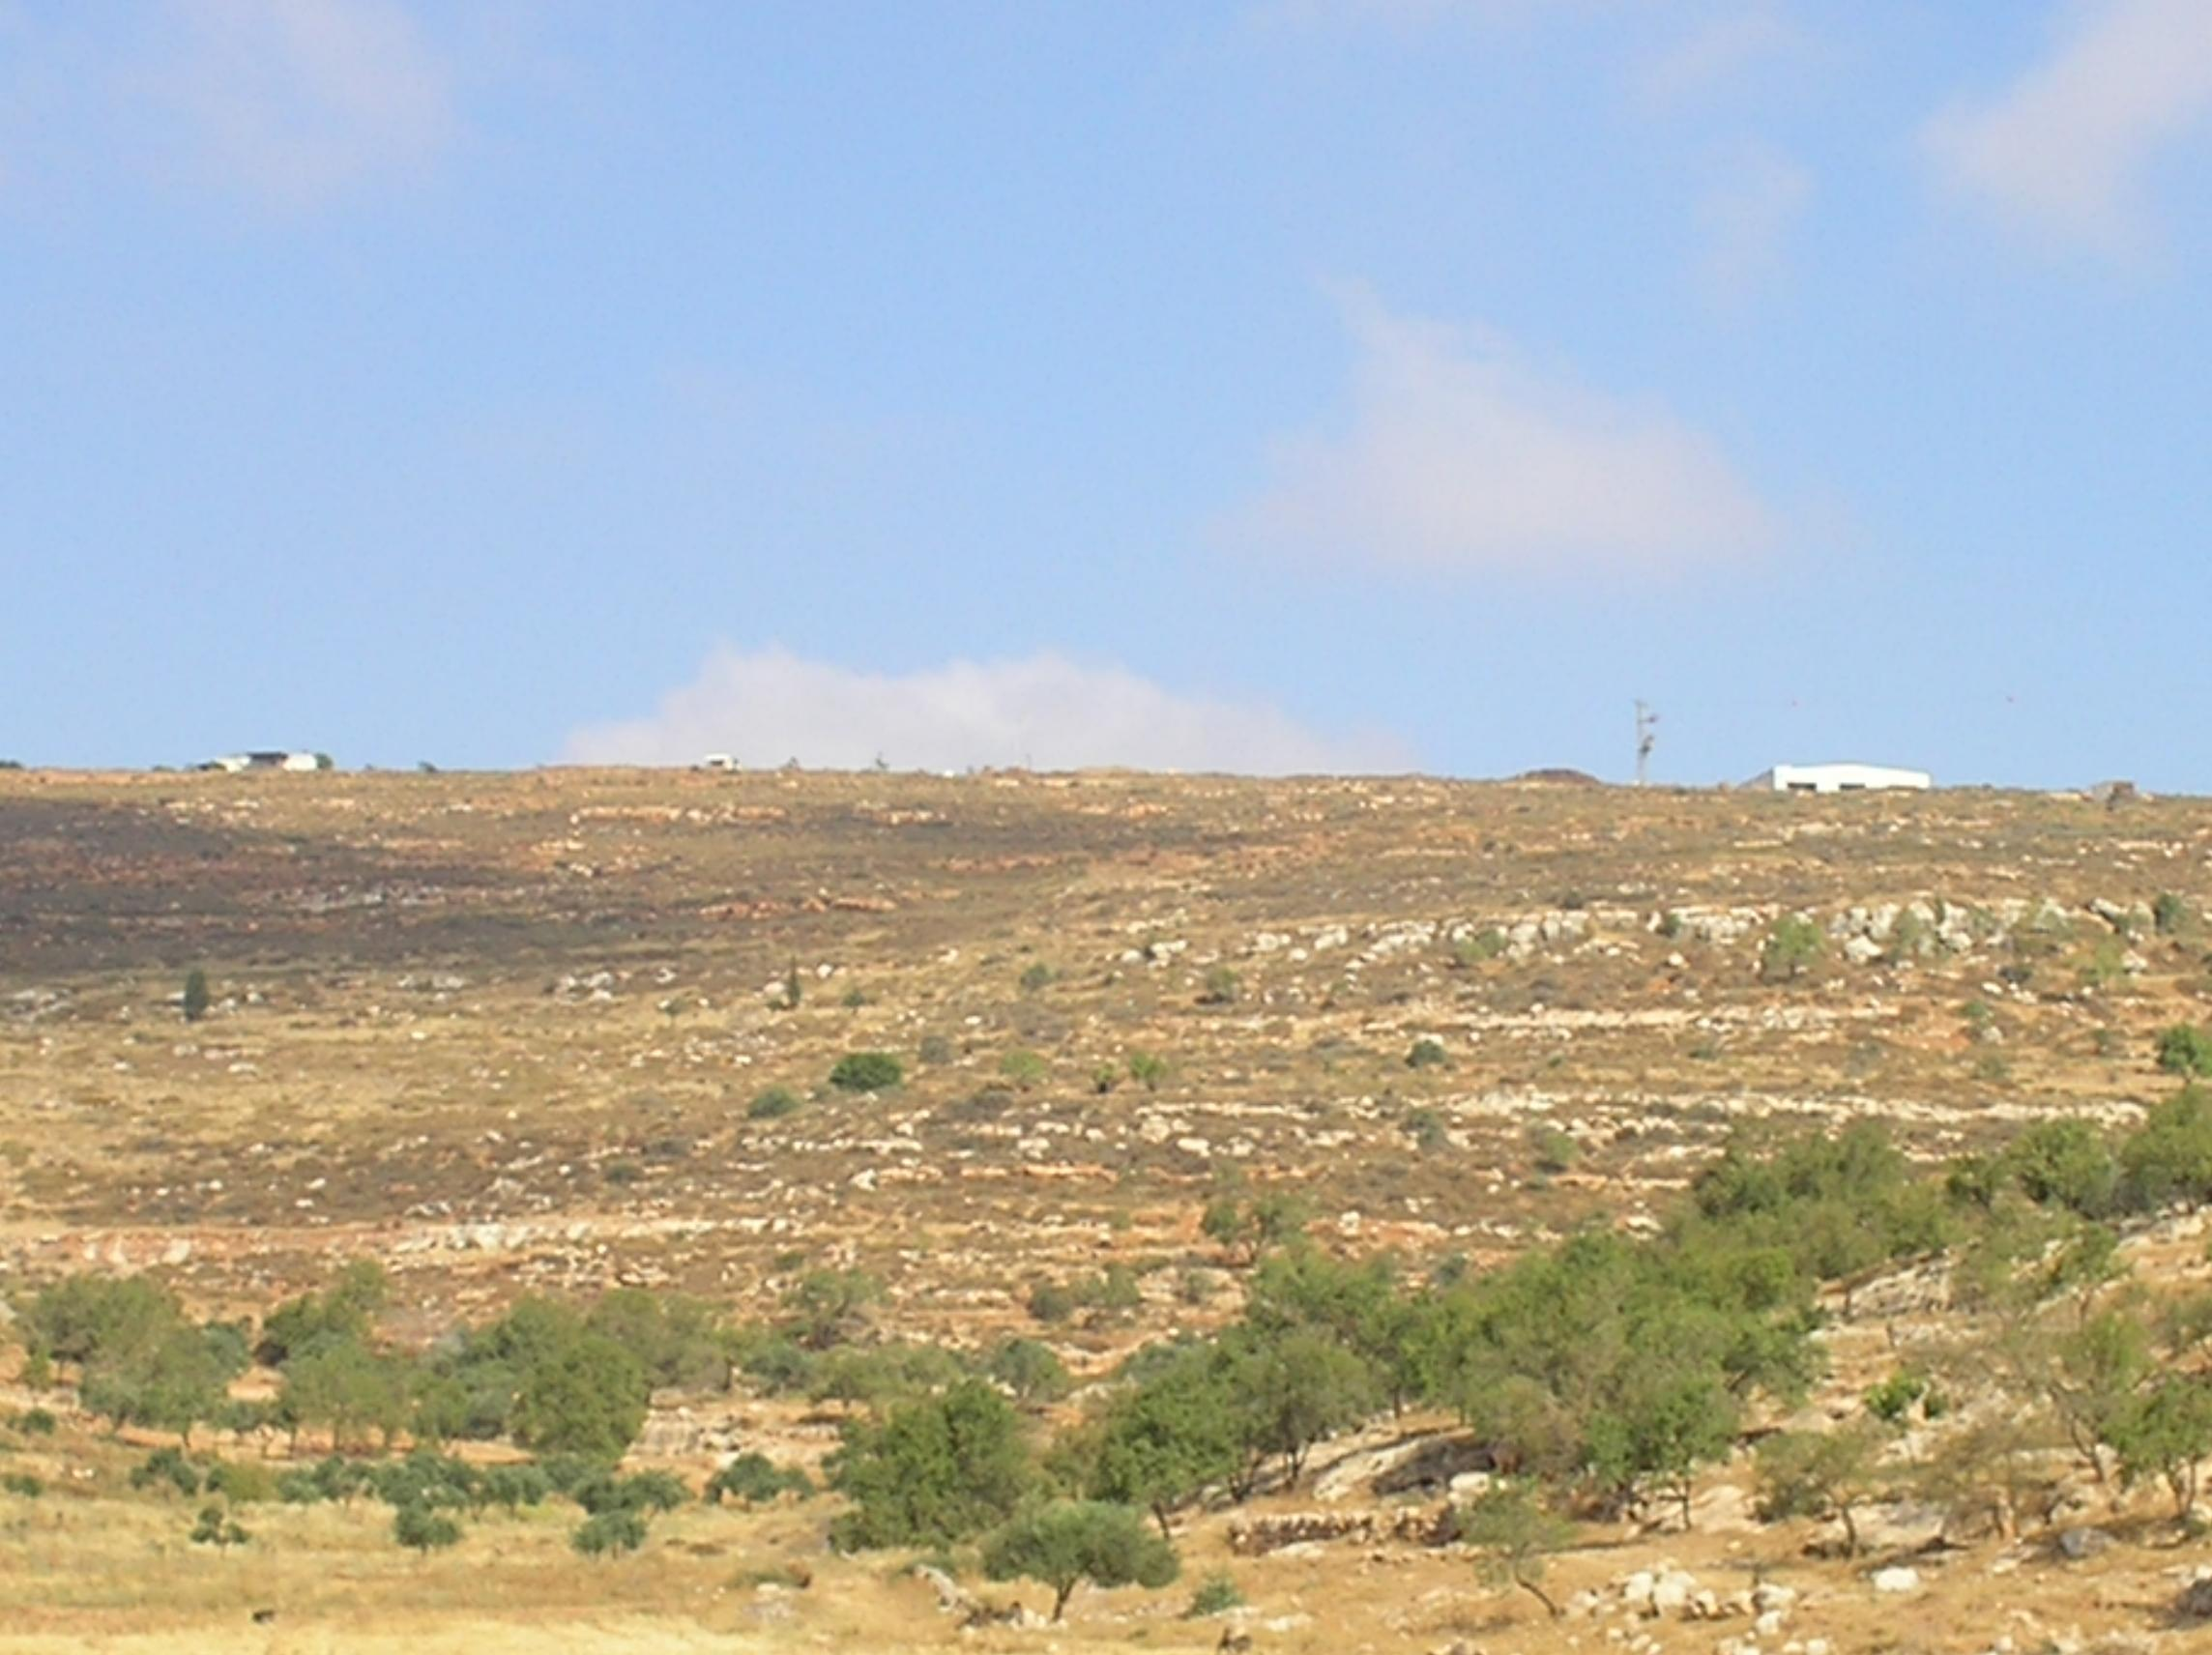 Yanun - يانون : The Israeli colony right at the top, barely can be seen